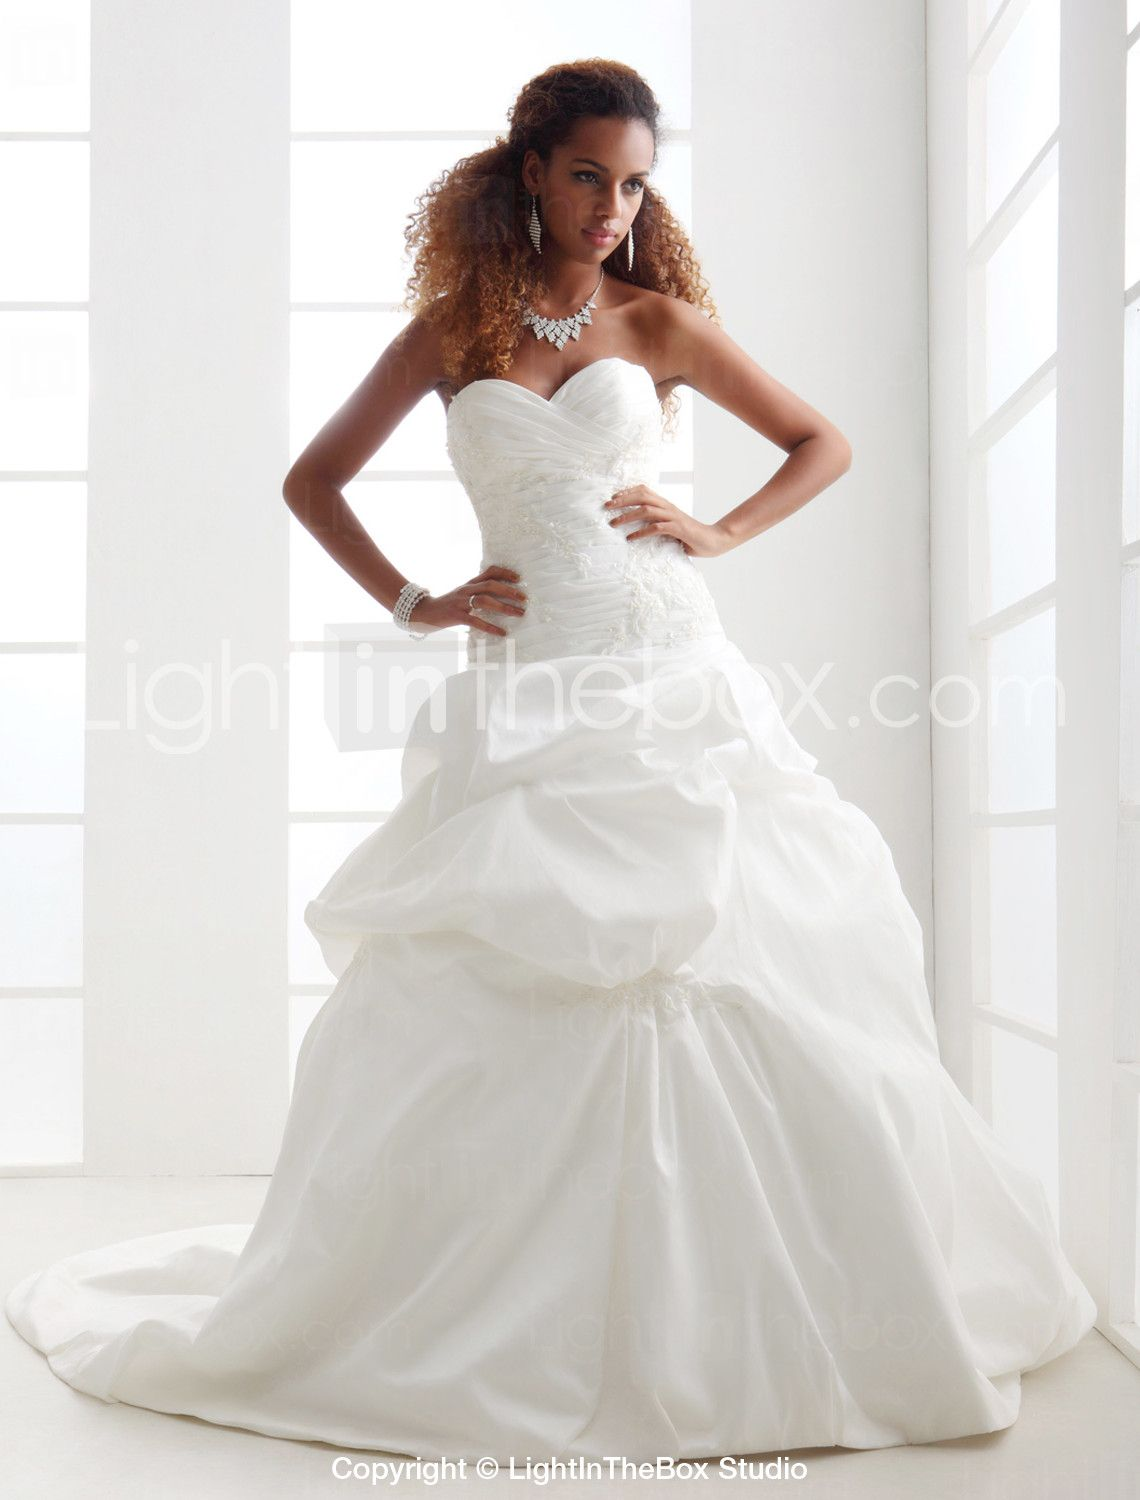 Lightinthebox wedding dresses  ALine Sweetheart Neckline Chapel Train Satin  Taffeta MadeTo